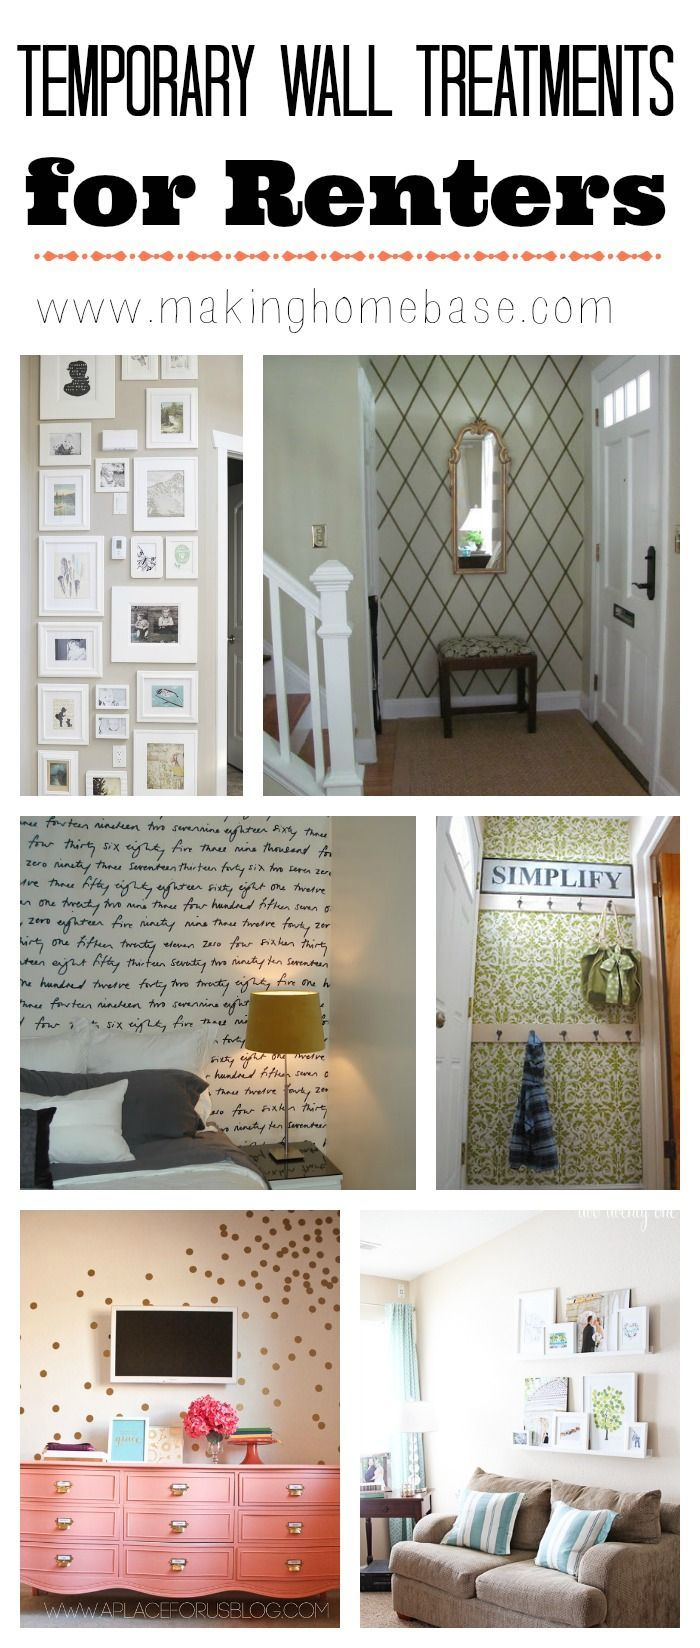 Temporary Wall Treatment Ideas to Spruce Up your Rental ...